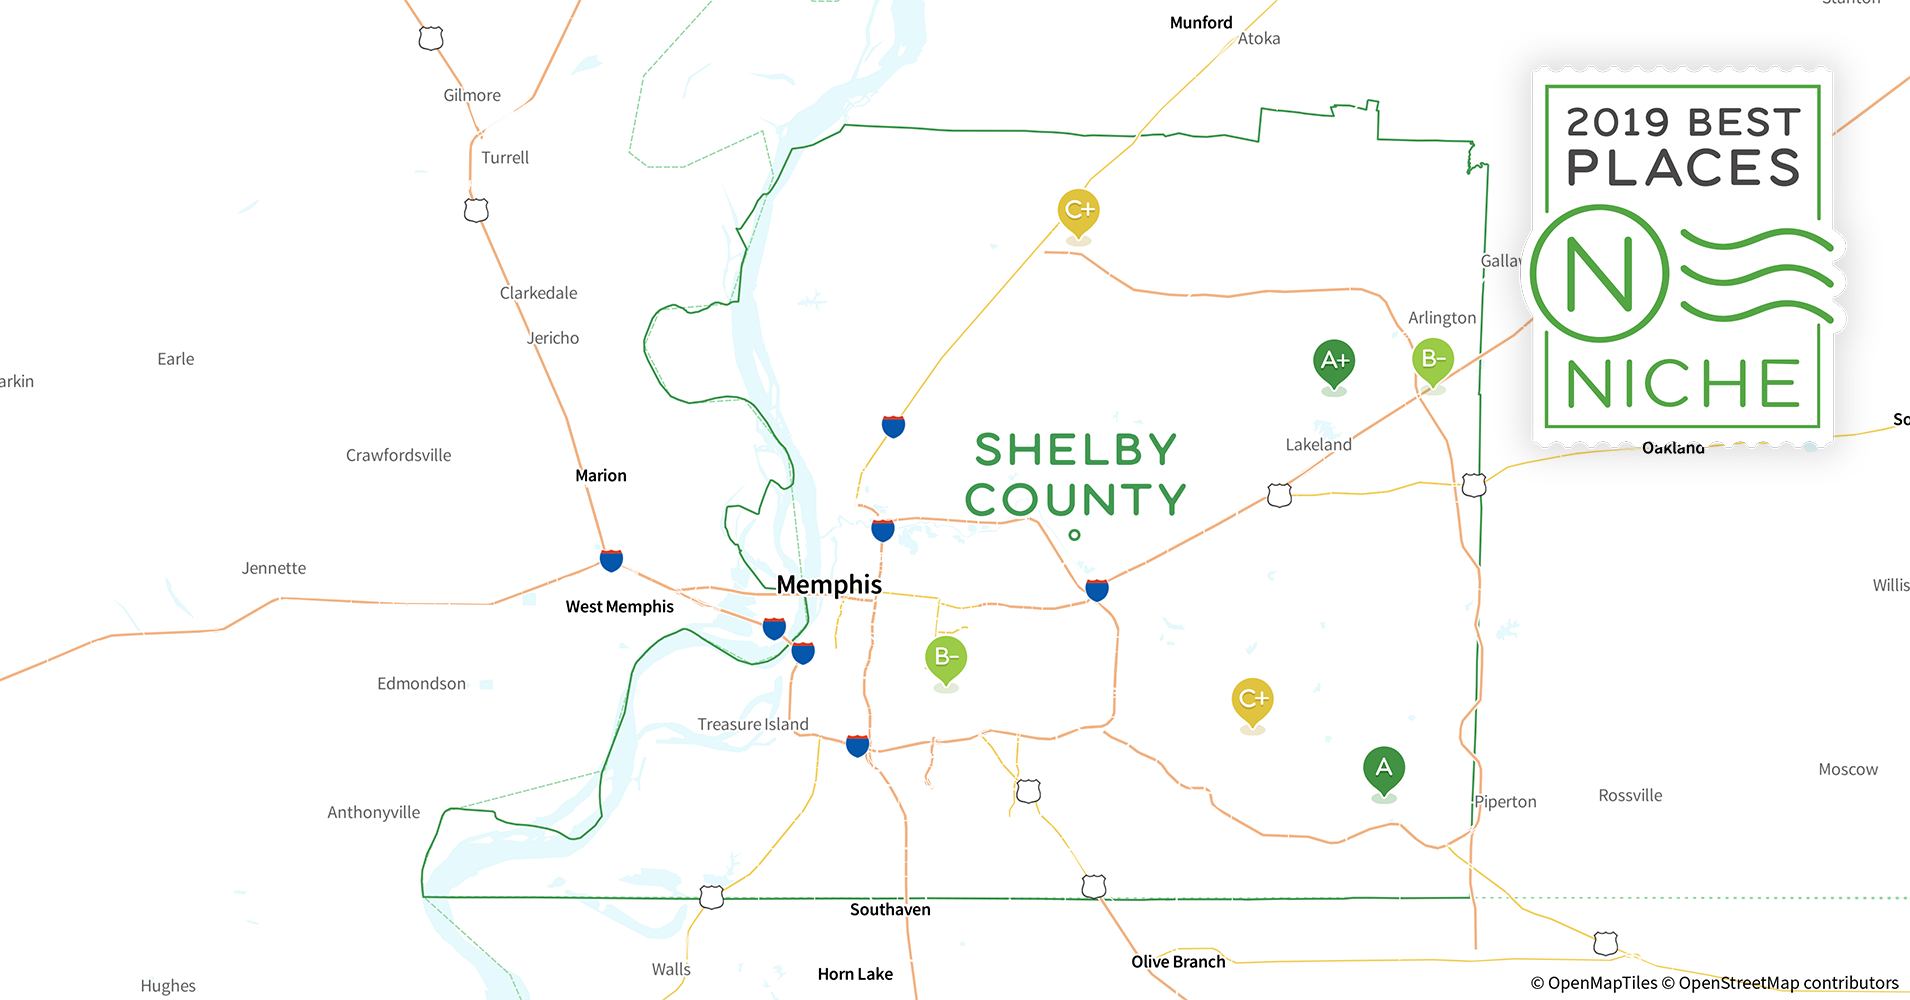 2019 Best Places To Live In Shelby County Tn Niche